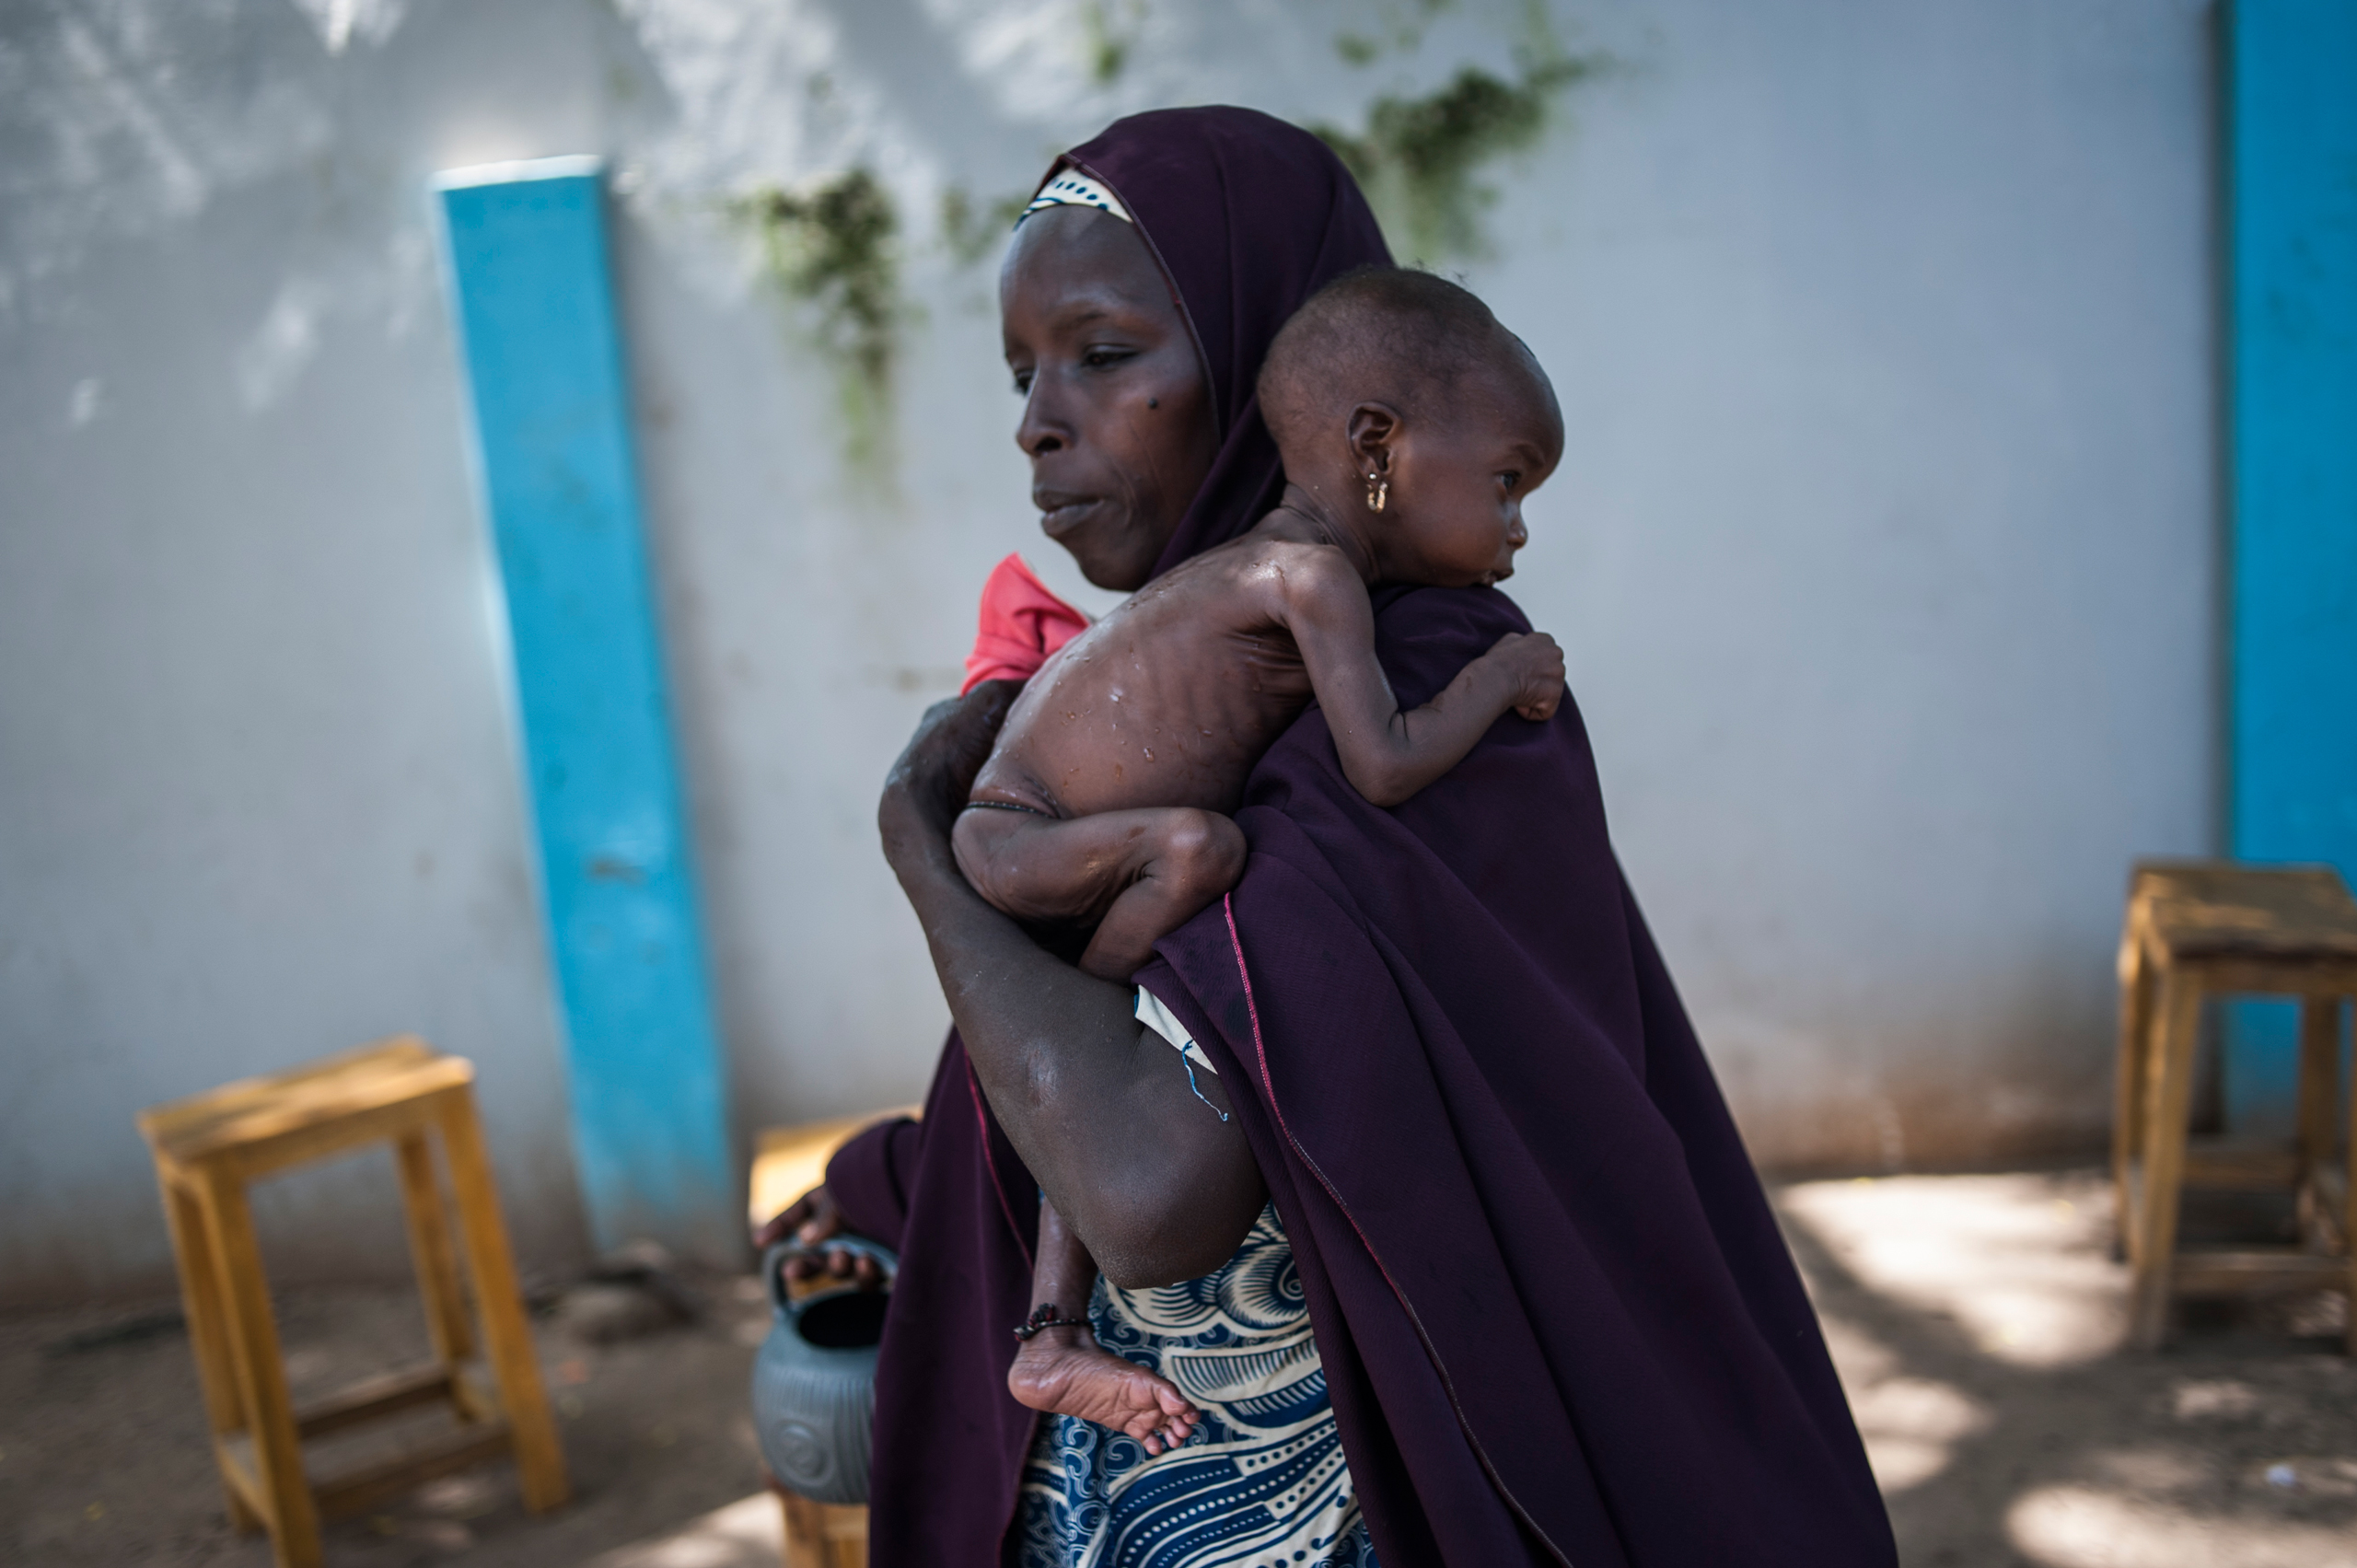 A mother holding her young malnourished baby at a public health facility in the Dalaram district of Maiduguri, Nigeria, on Sept. 15, 2016.